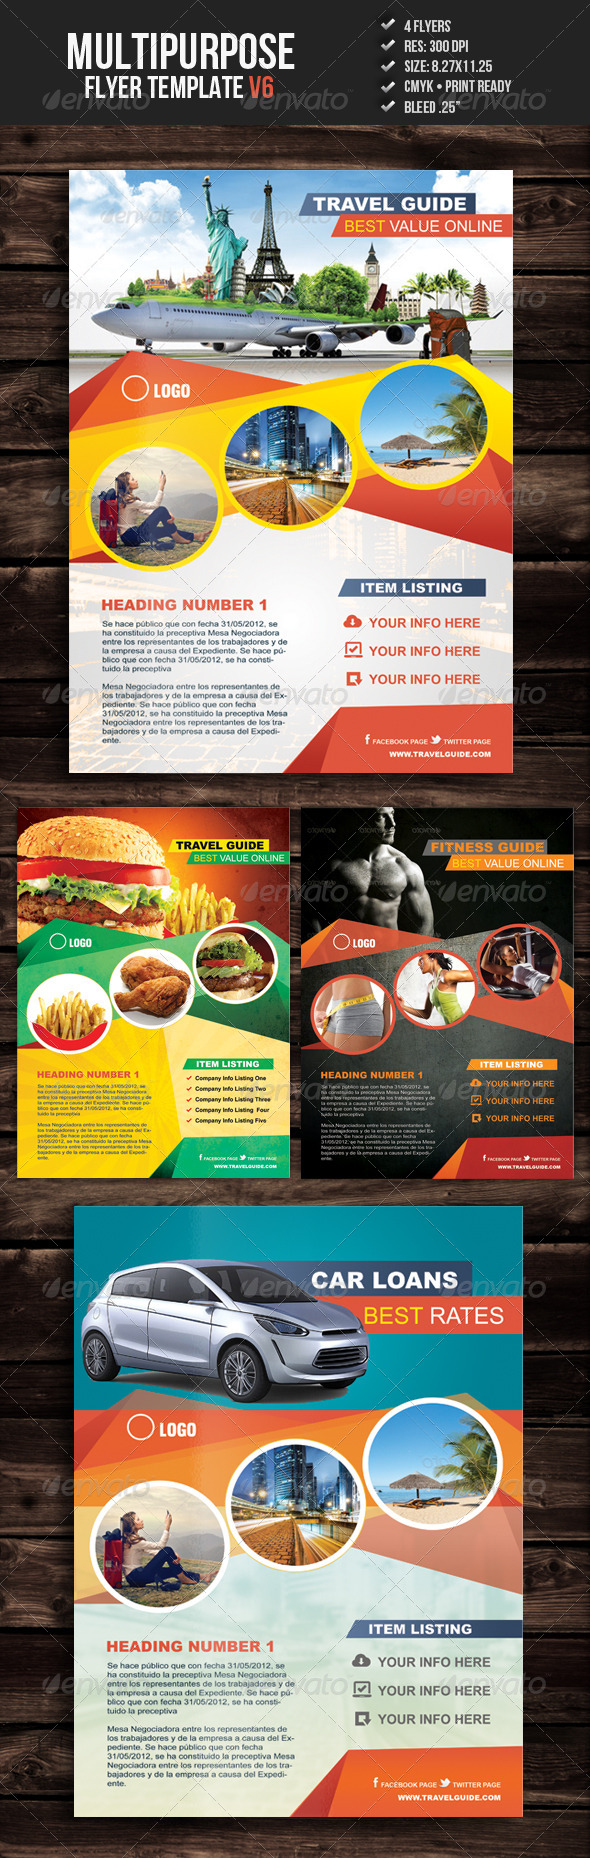 GraphicRiver Multipurpose Flyer Template V6 5375050